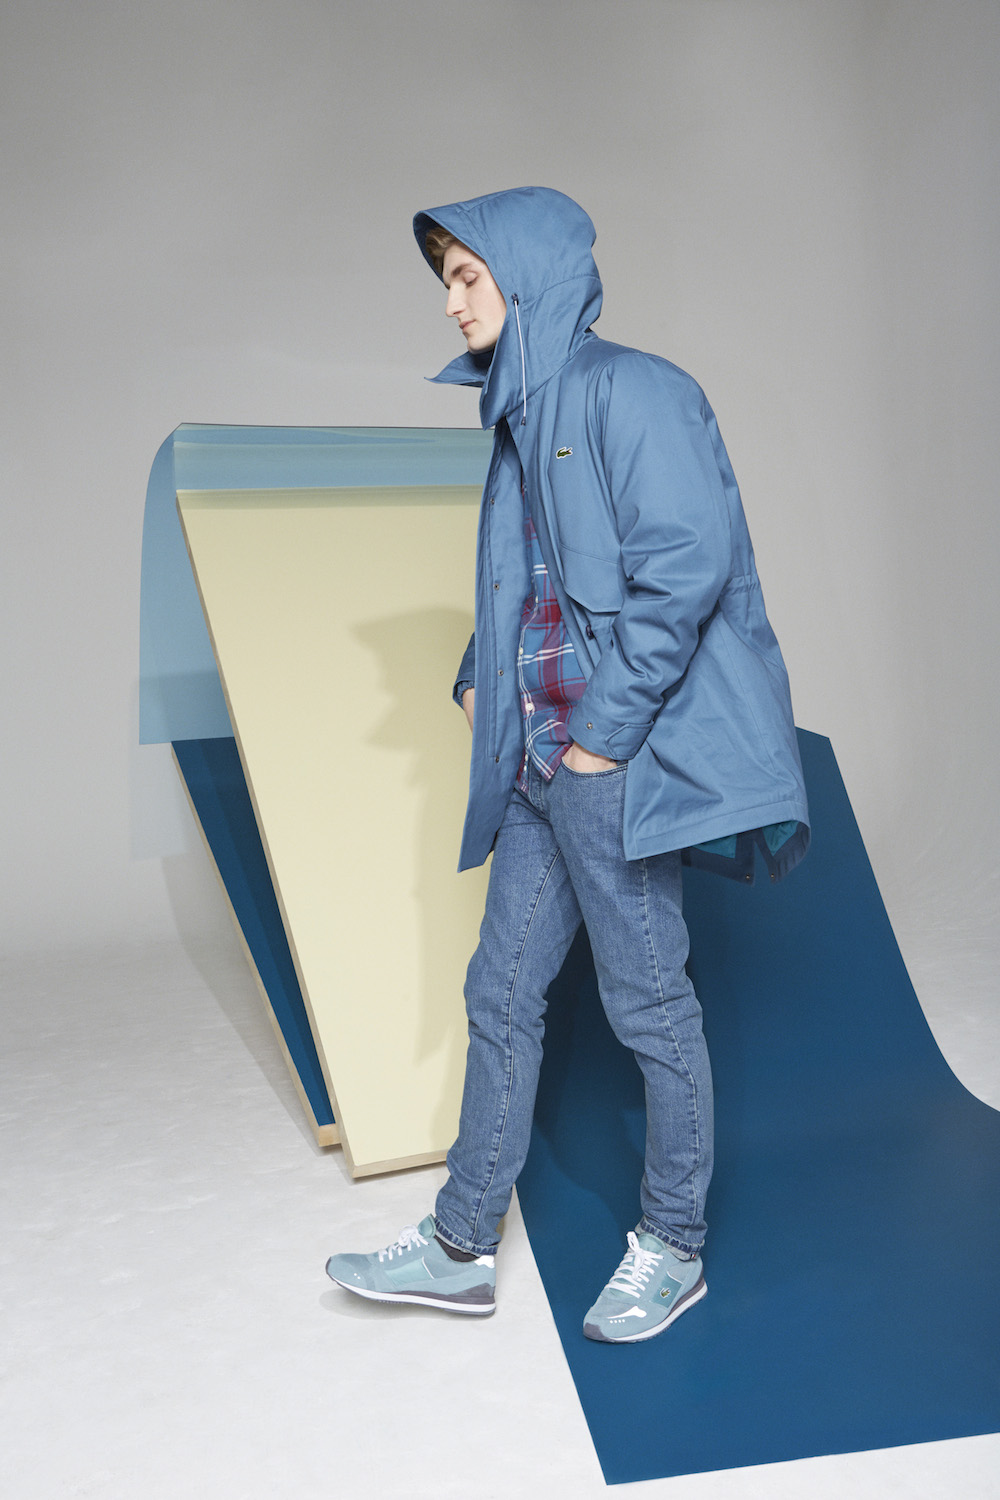 011_LACOSTE_LIVE_FW14-15_Menswear_Look_Book